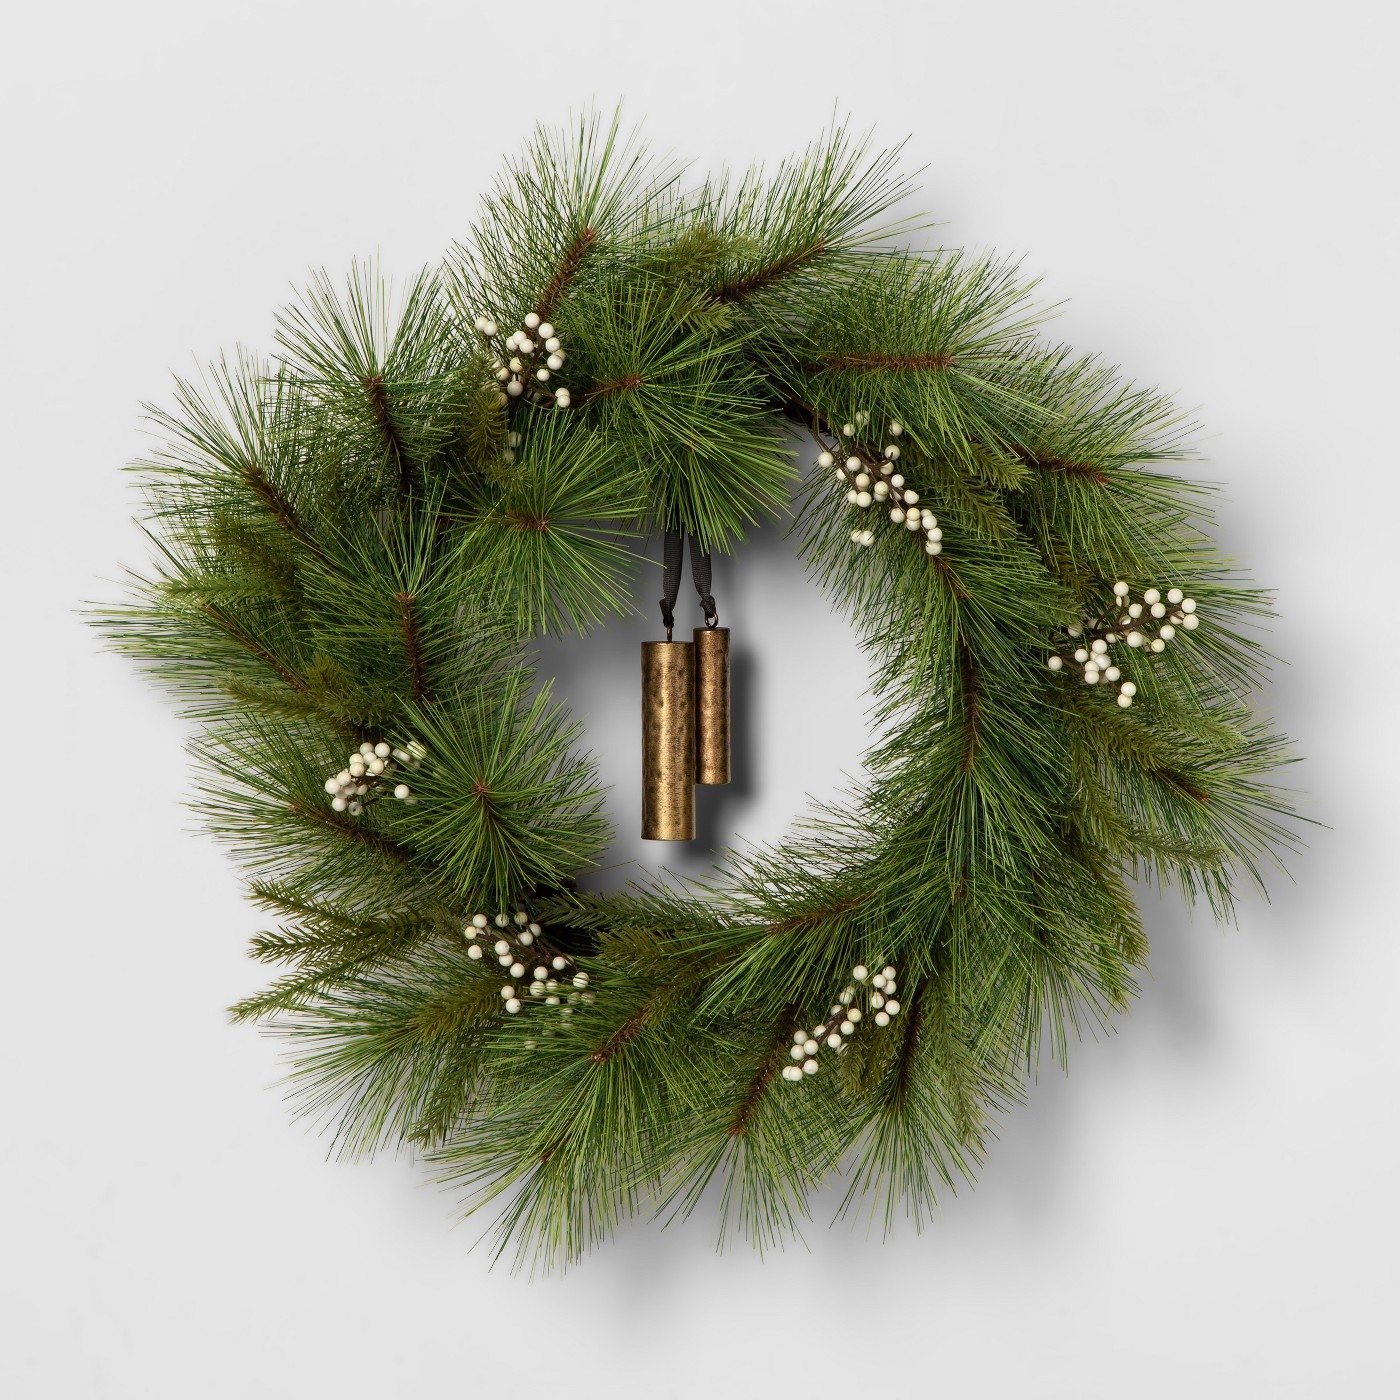 Wreath White Berry Pine Needle with Bell - Hearth & Hand™ with Magnolia - image 1 of 1